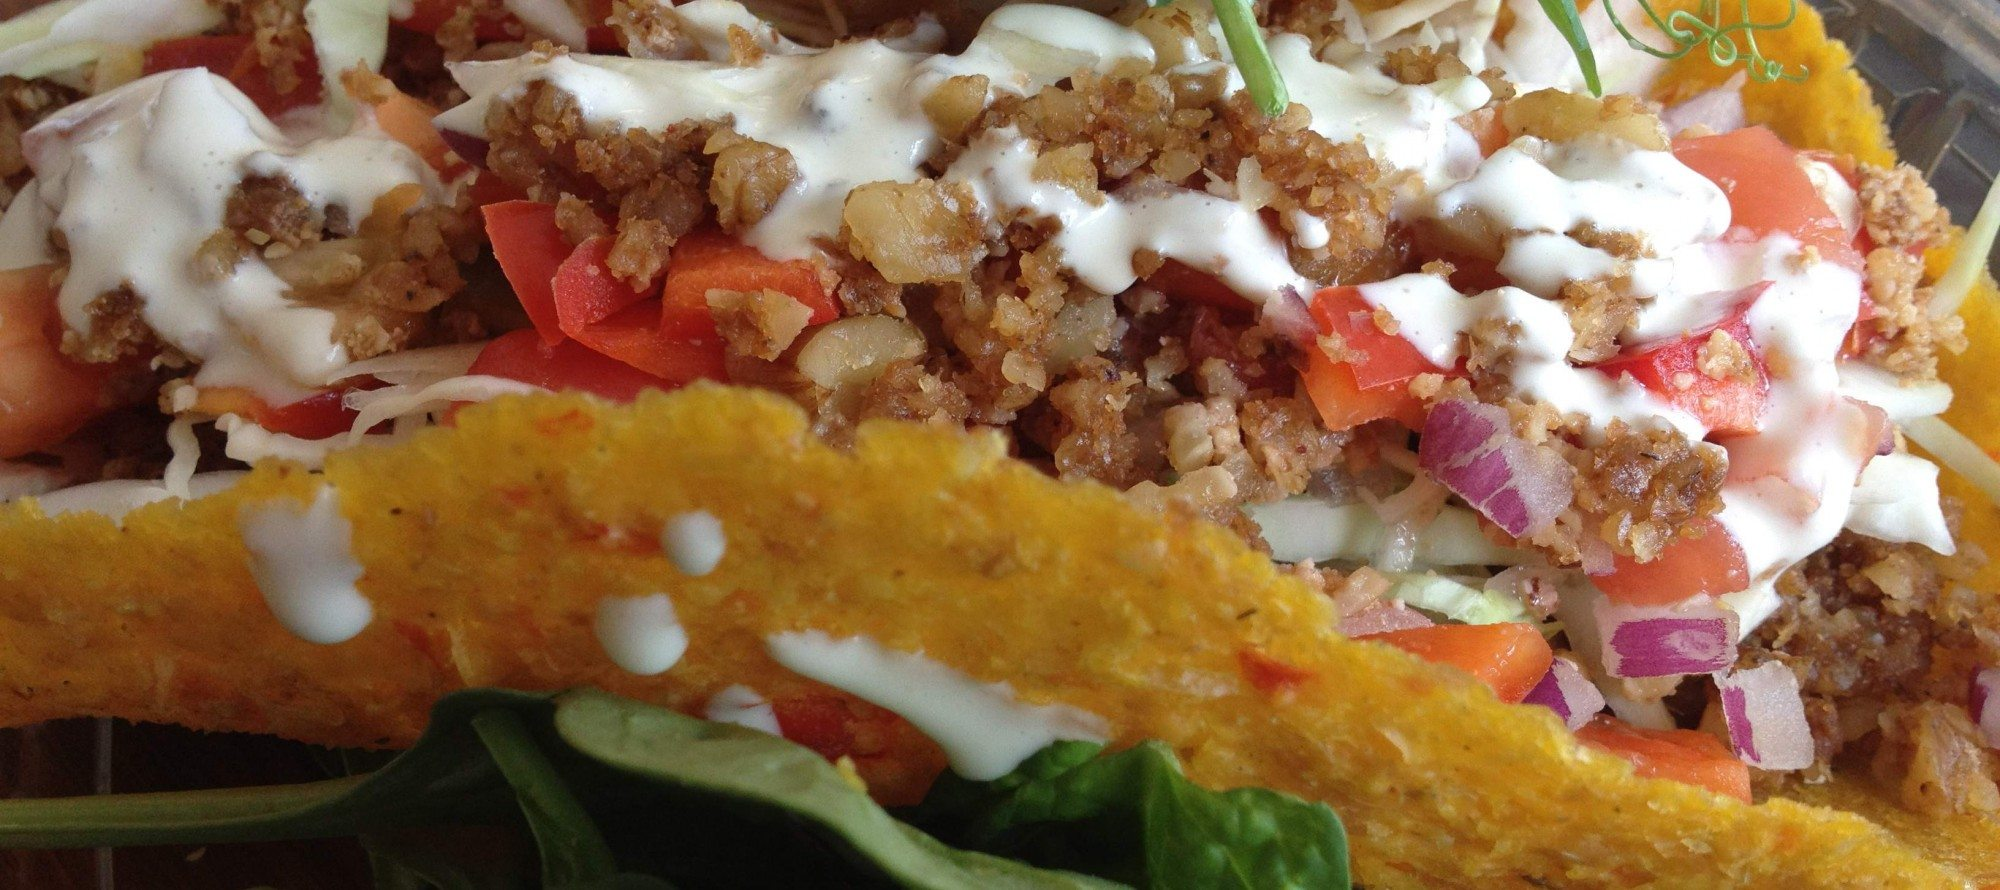 WEEKLY LUNCH PICK: Simply Raw Express provides an innovative take on the trendy taco